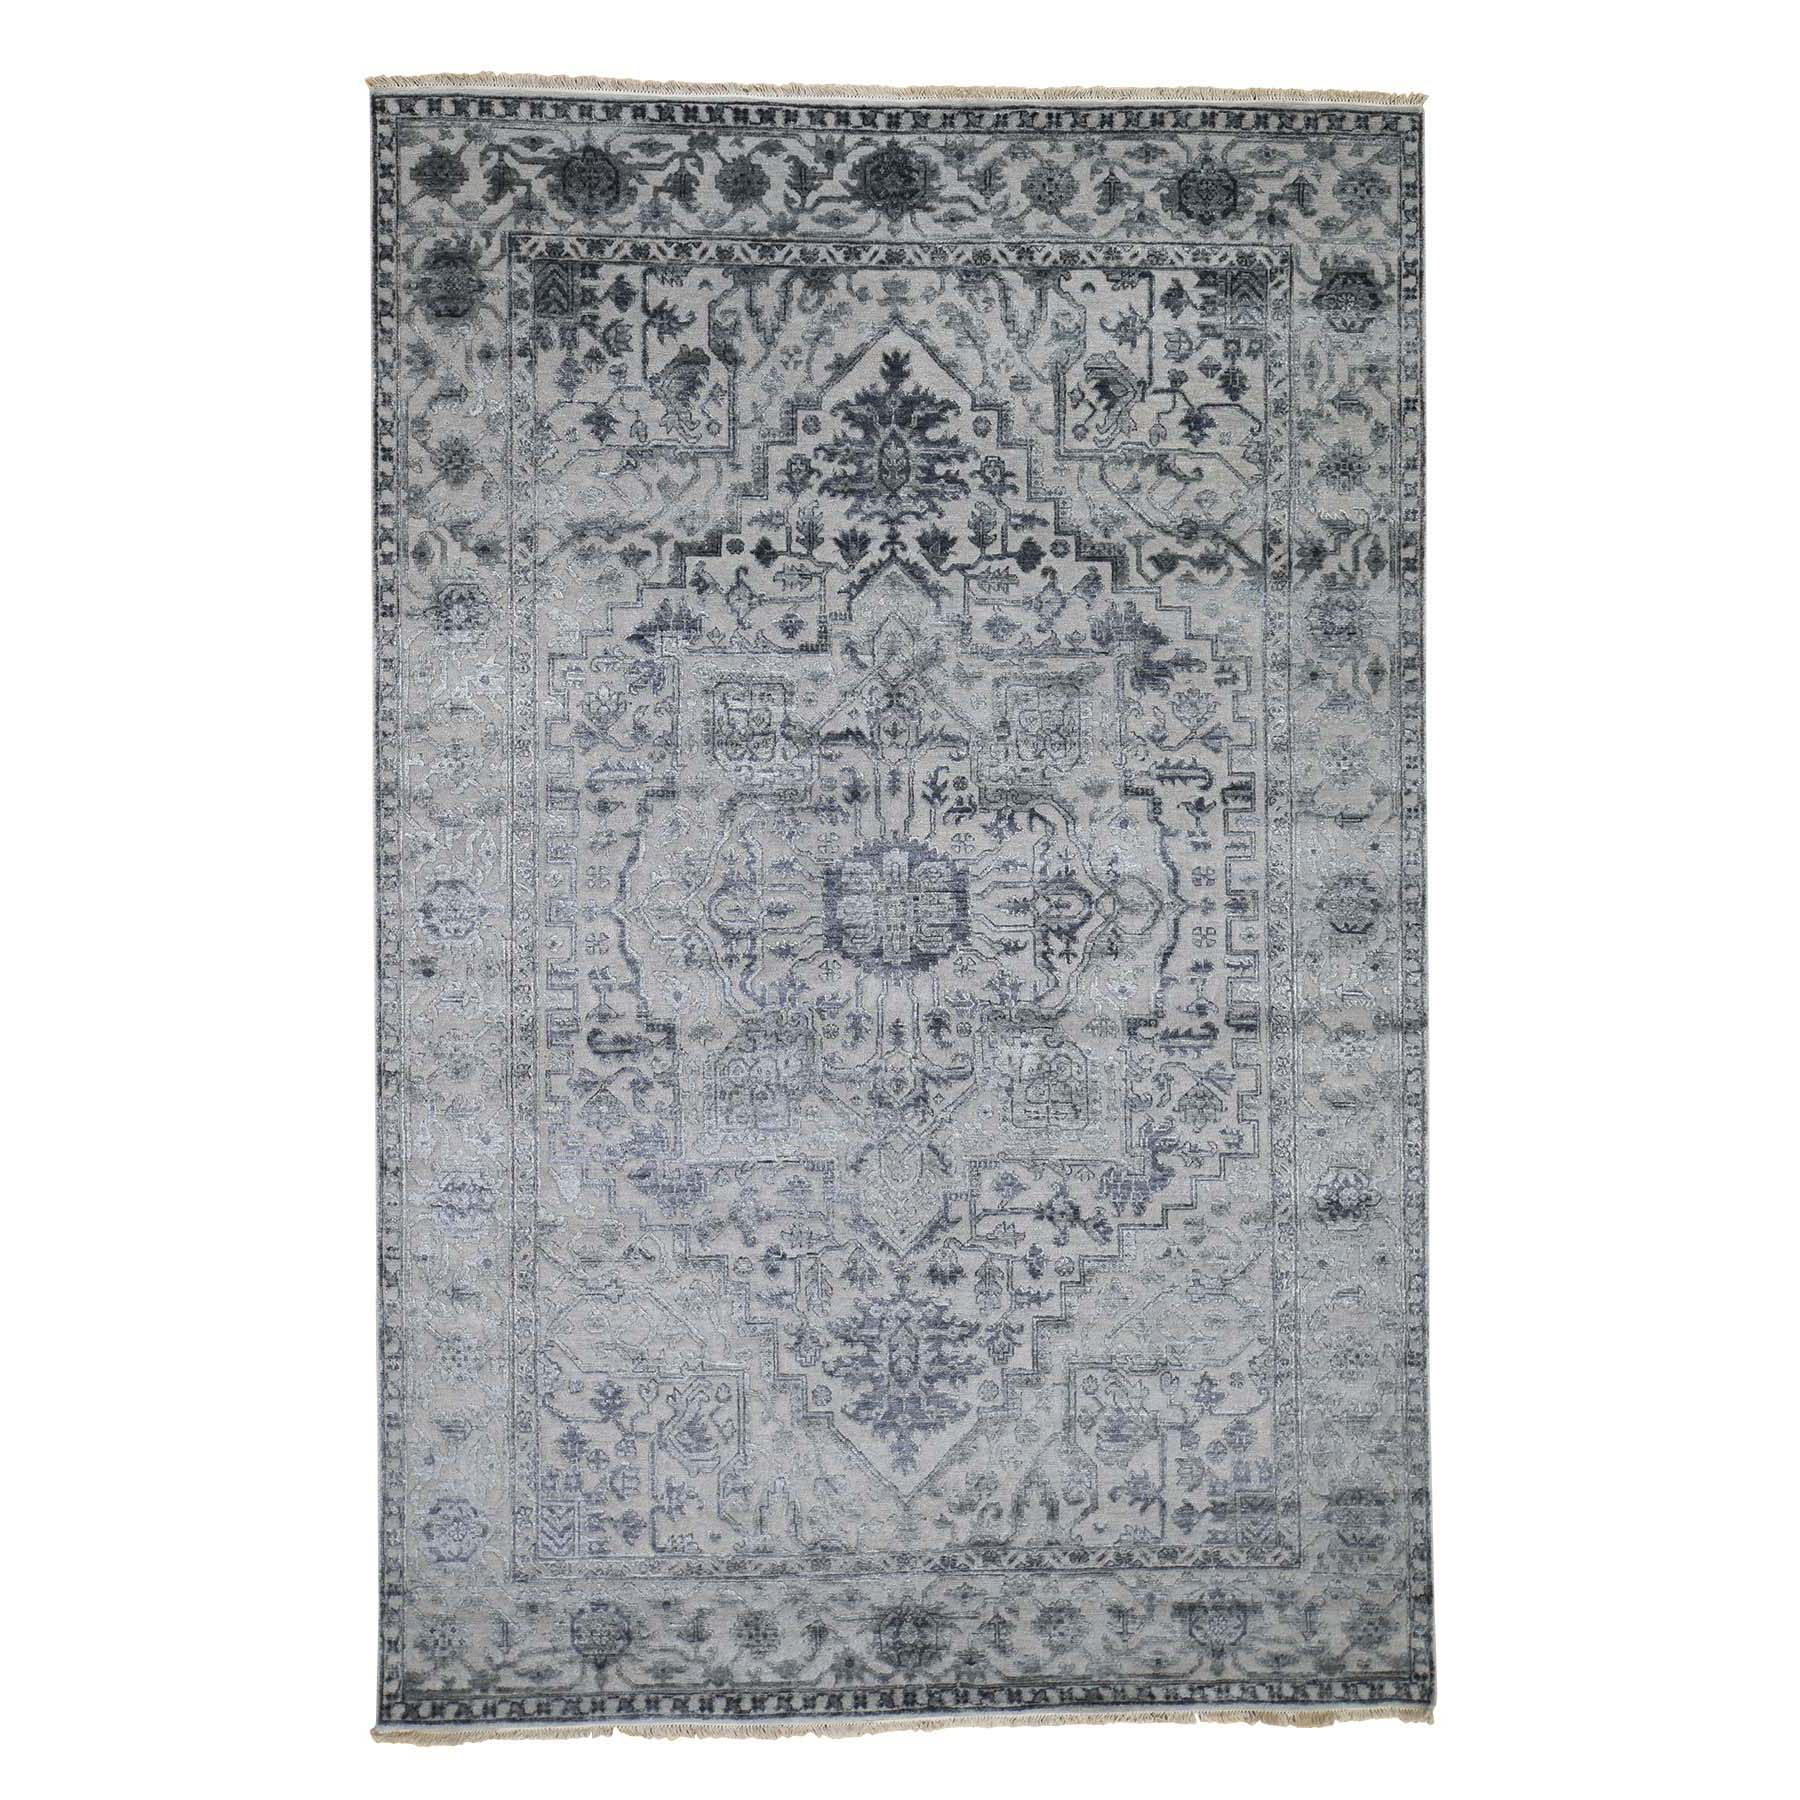 "6'x9'2"" Silver Heriz Design Wool And Silk Hi-lo Pile Hand-Knotted Oriental Rug"